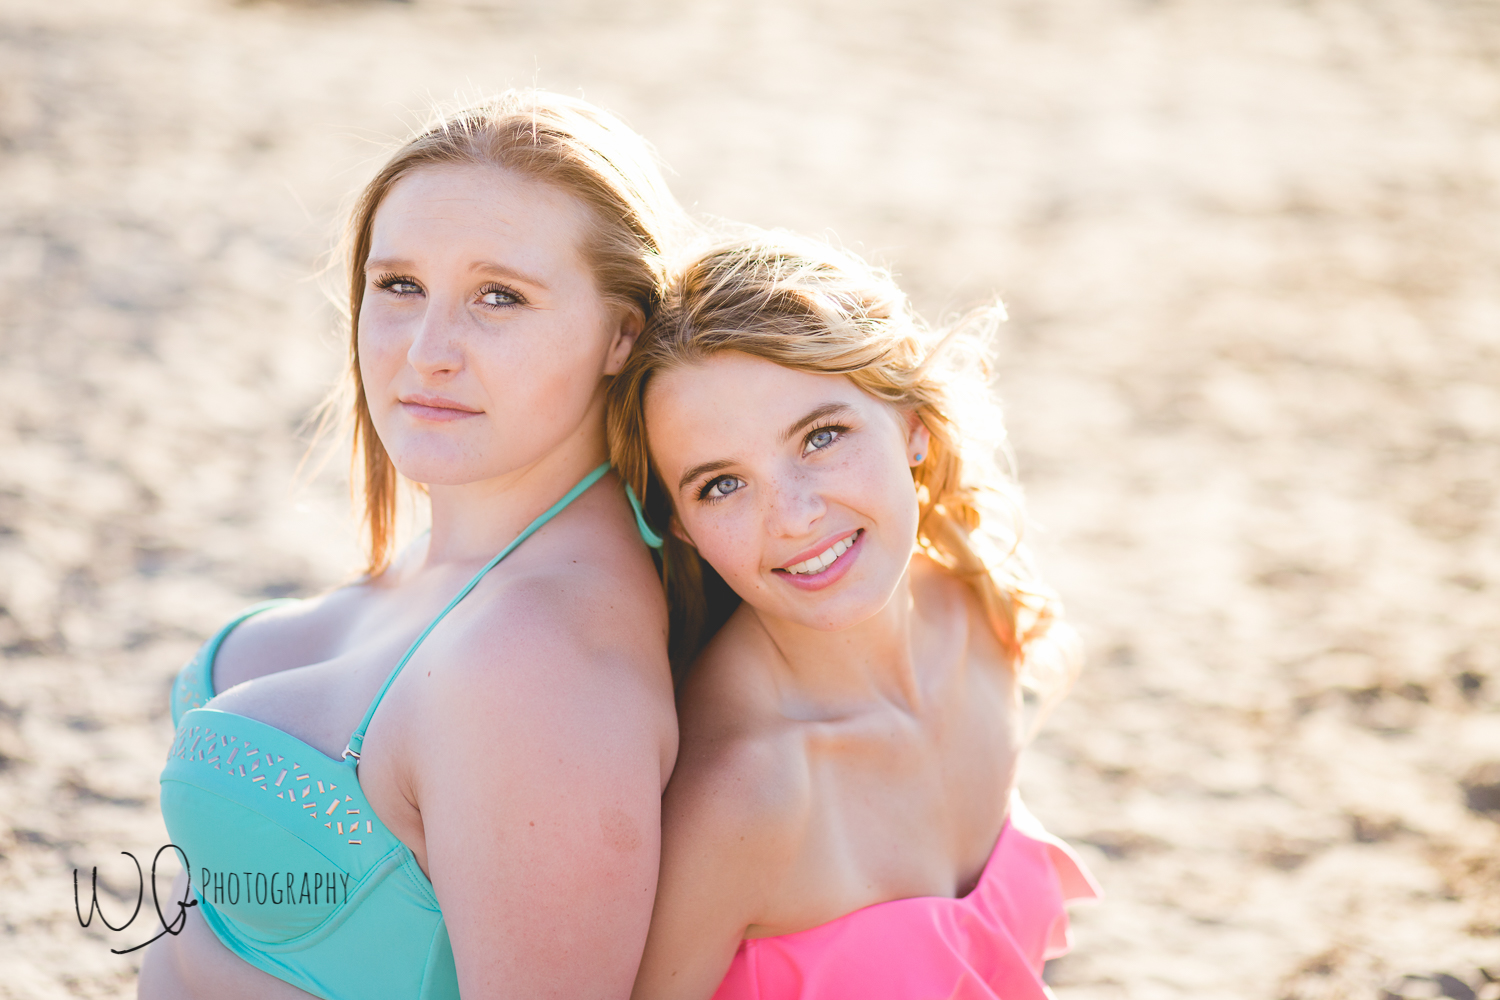 best-friend-photo-shoot-whitney-bufton-photography-6.jpg